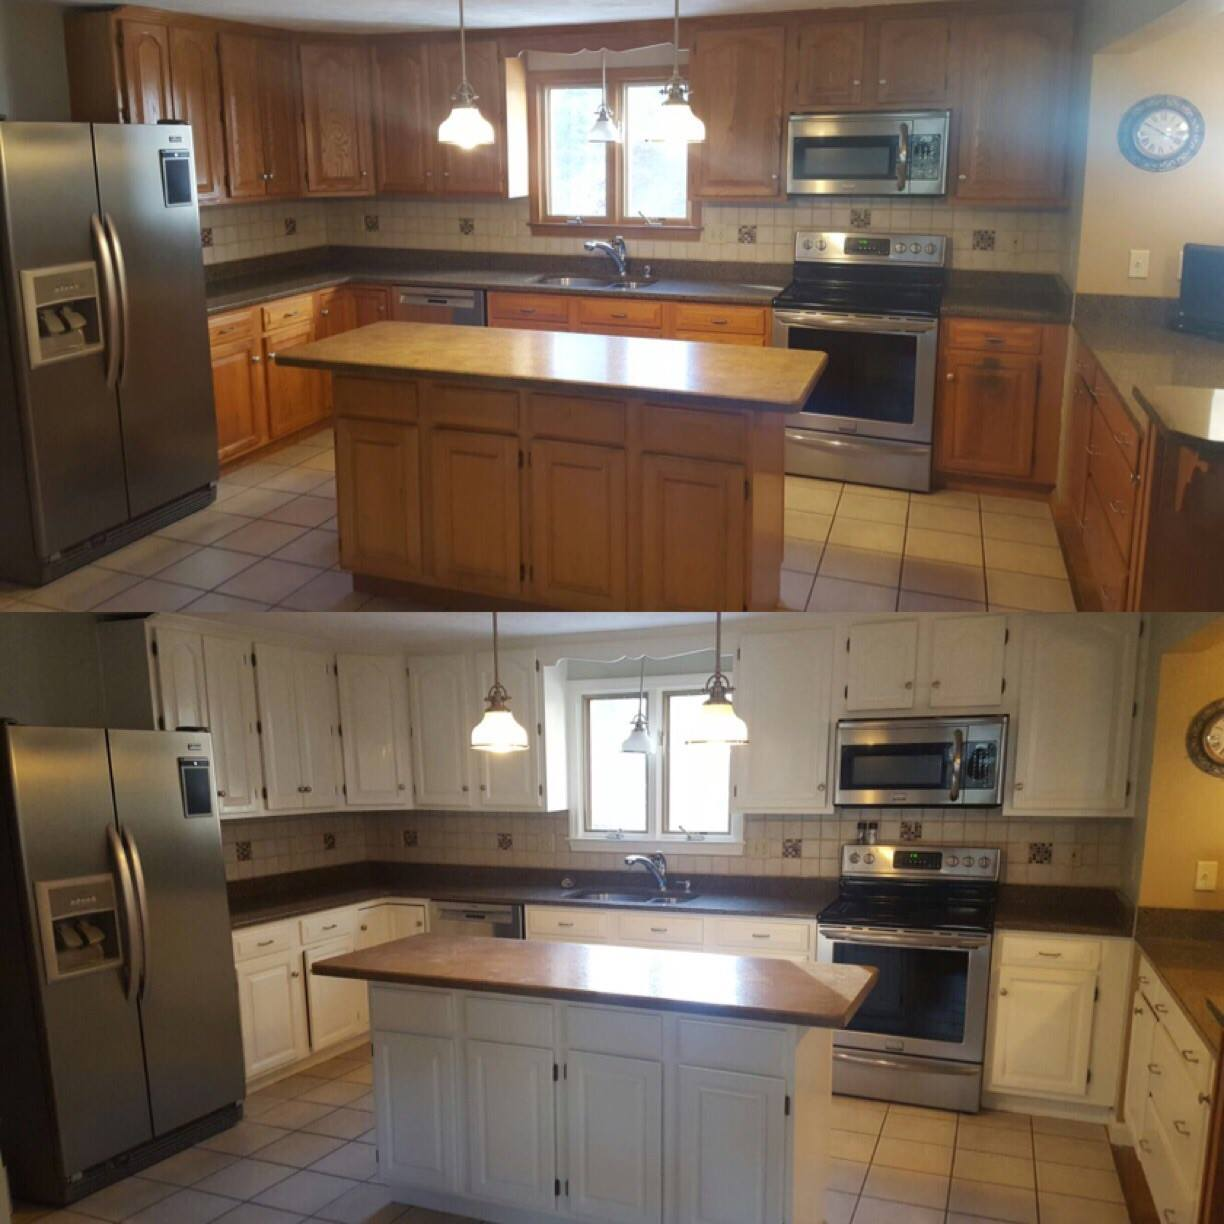 Kitchen Cabinet Refinishing: Medfield, Westwood, Dover, Sherborn, MA